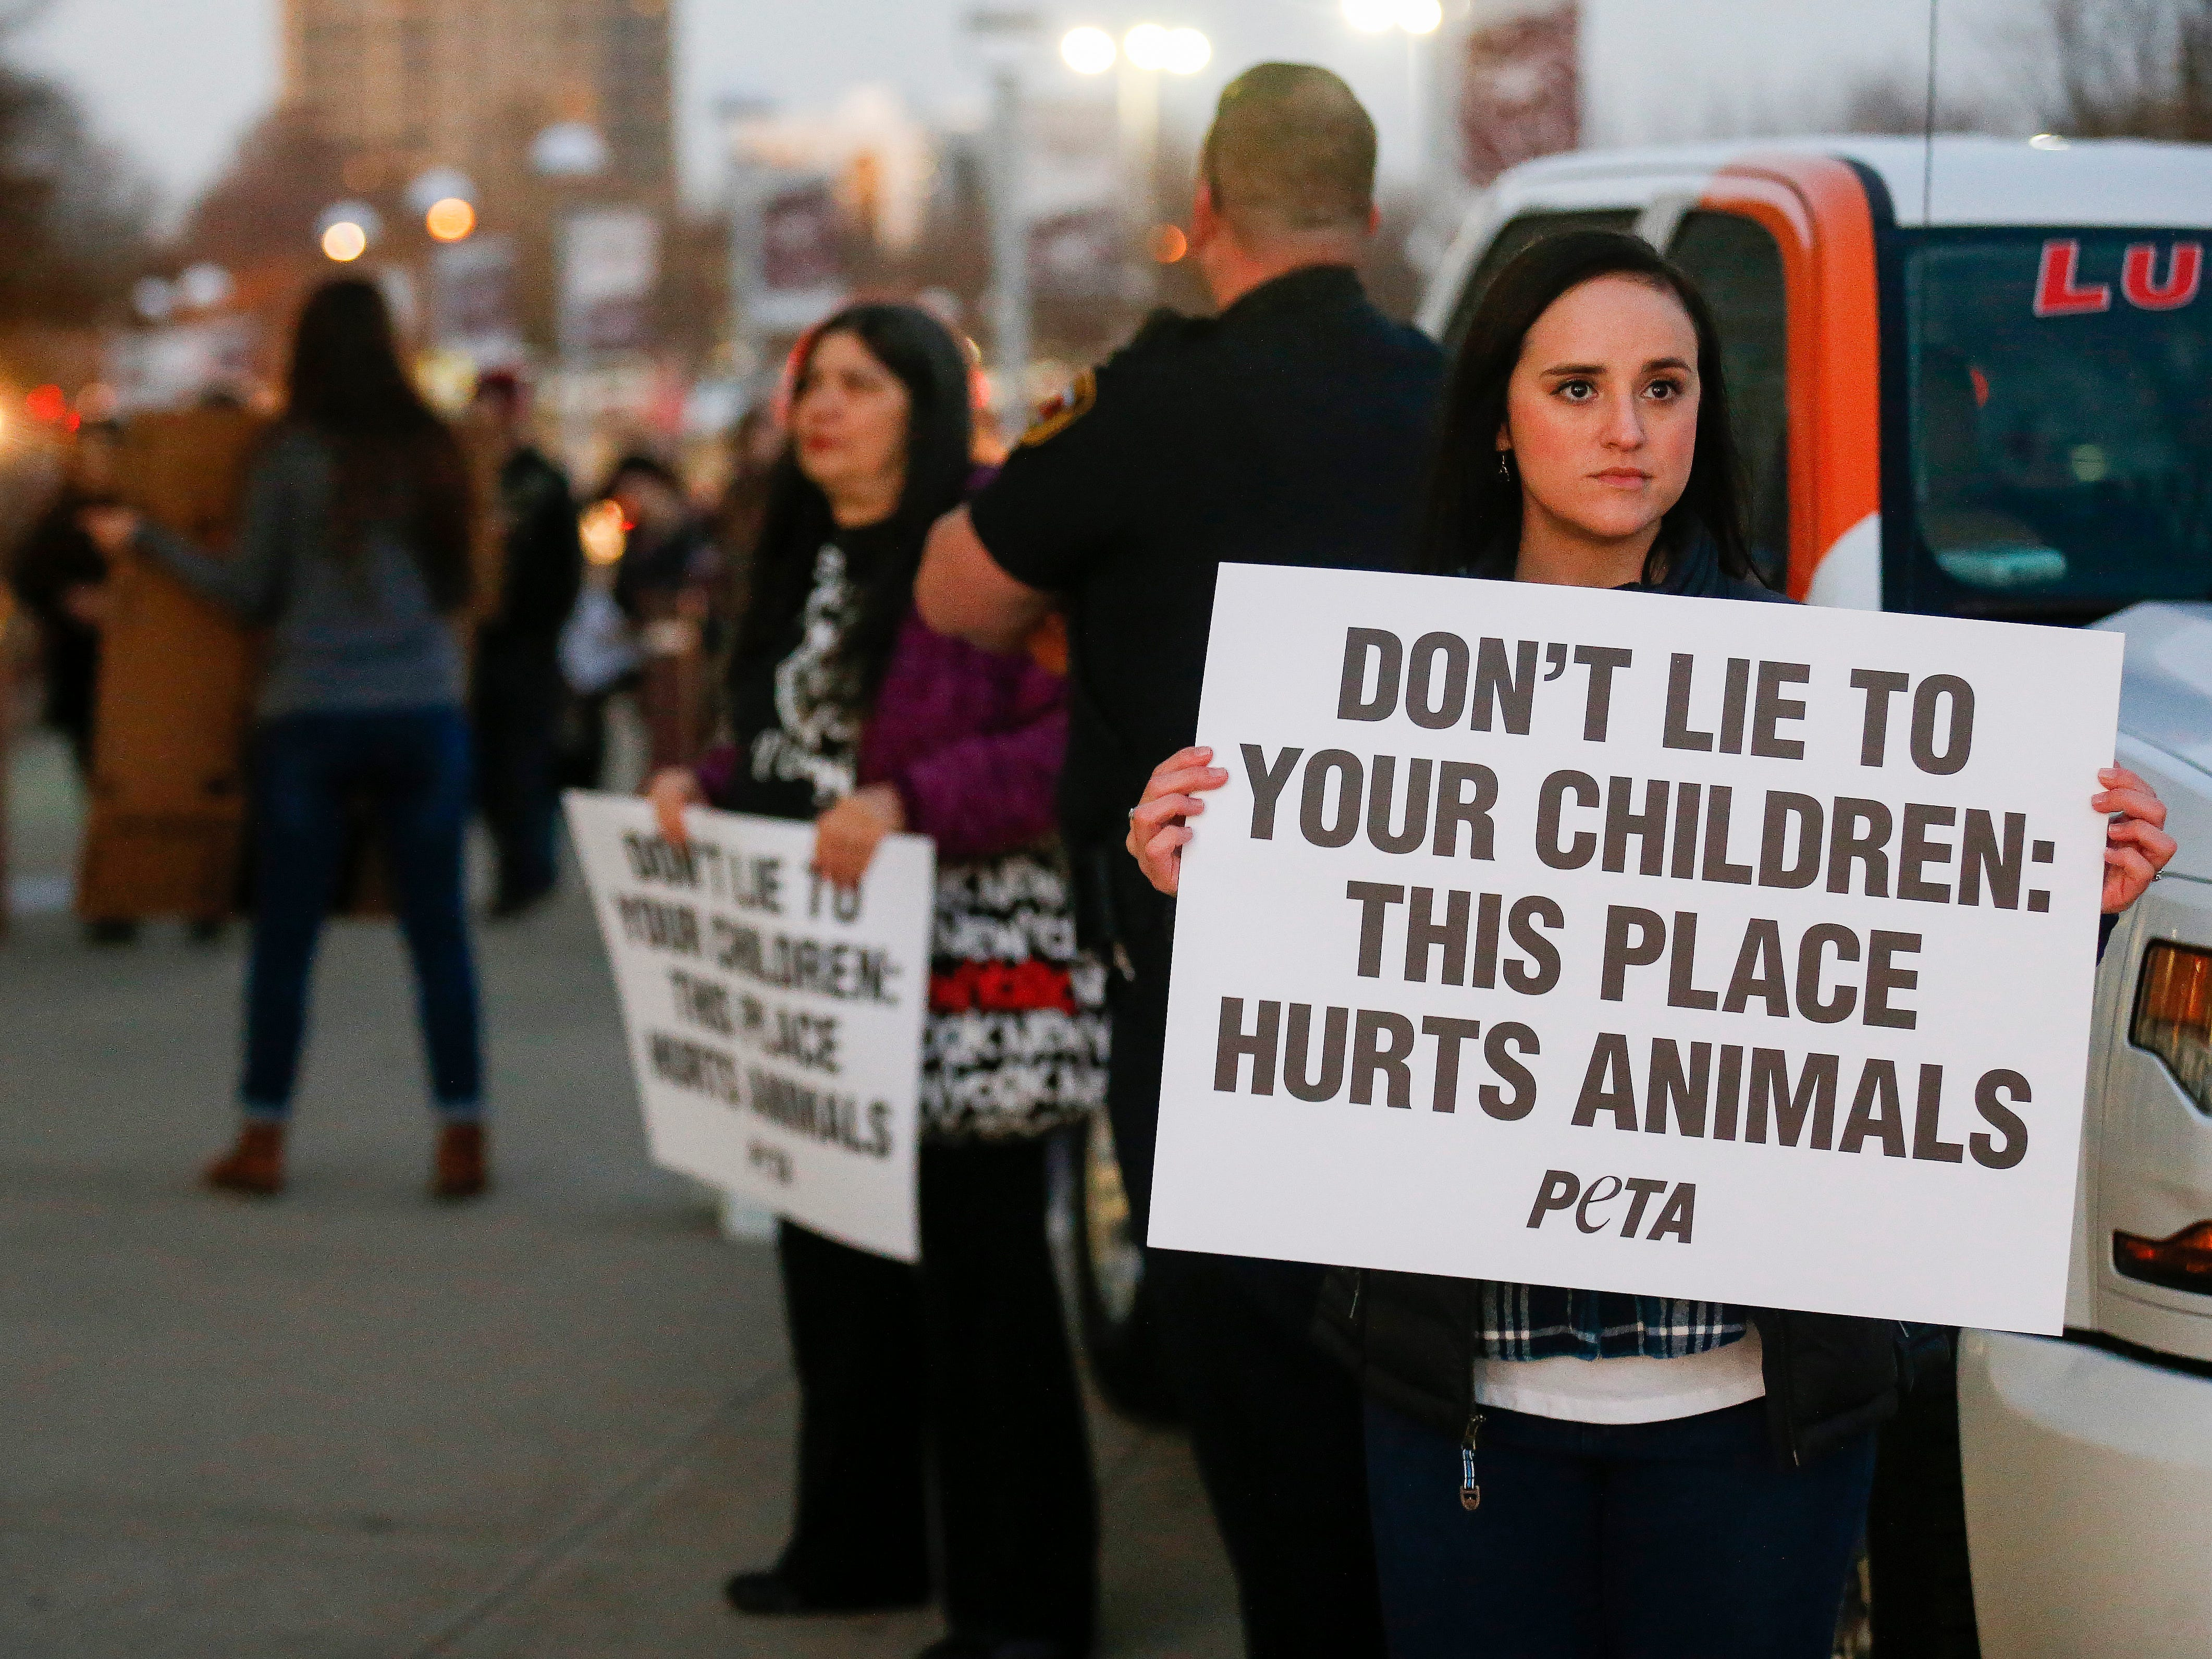 Animal rights activist Beverly Furstenberg protests in front of JQH Arena against the use of animals in the Carden Circus on Friday, Feb. 1, 2019.